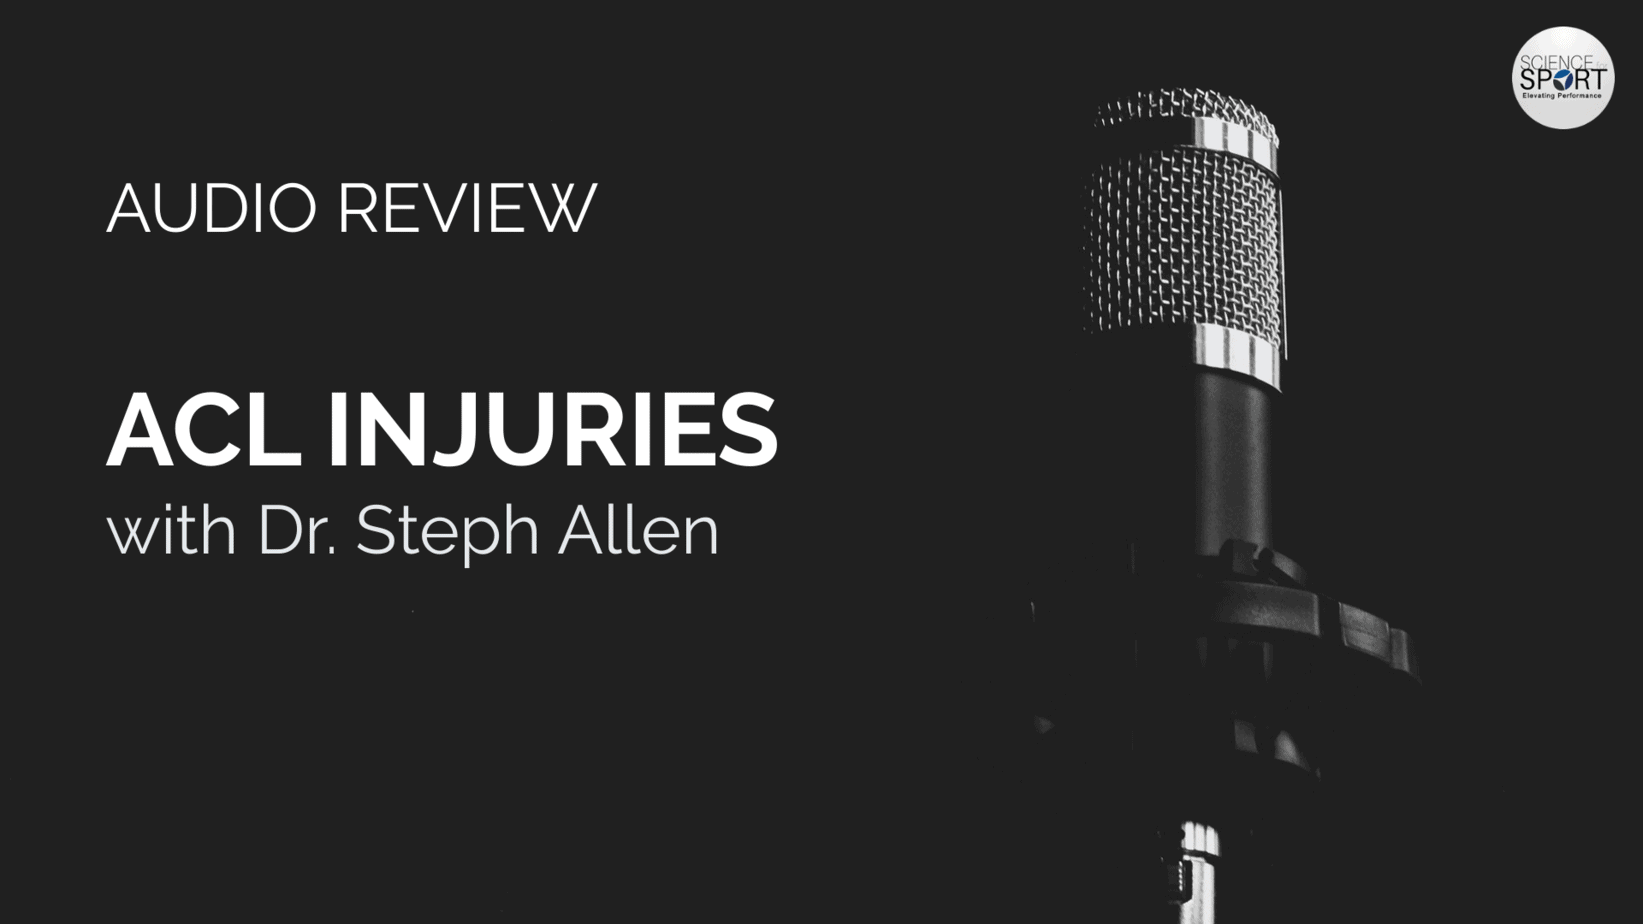 Audio Review - ACL Injuries - Science for Sport